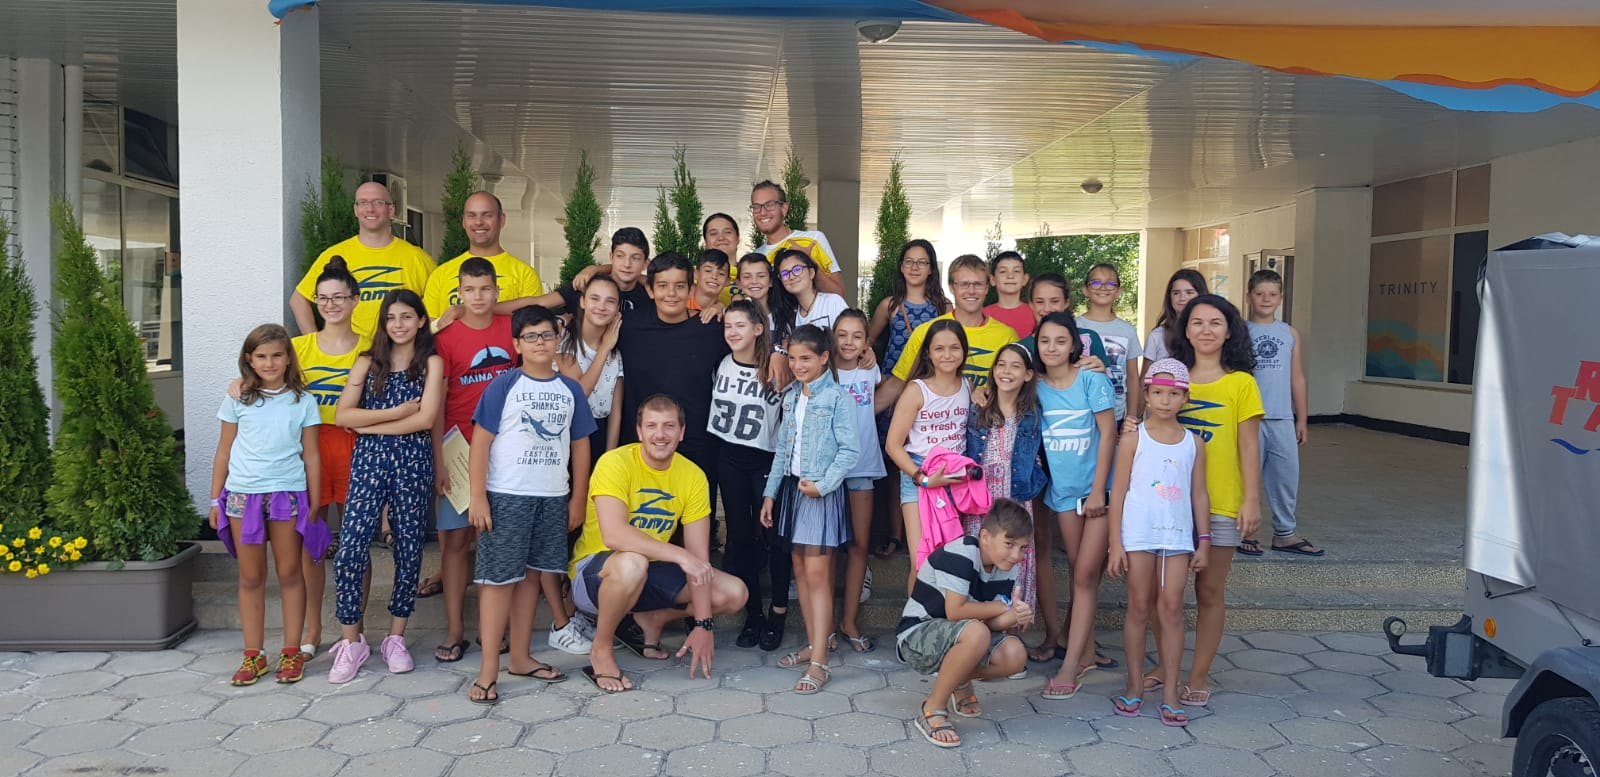 language summer camps for kids Z camp, Day 25 - photo of the whole group of children and teachers